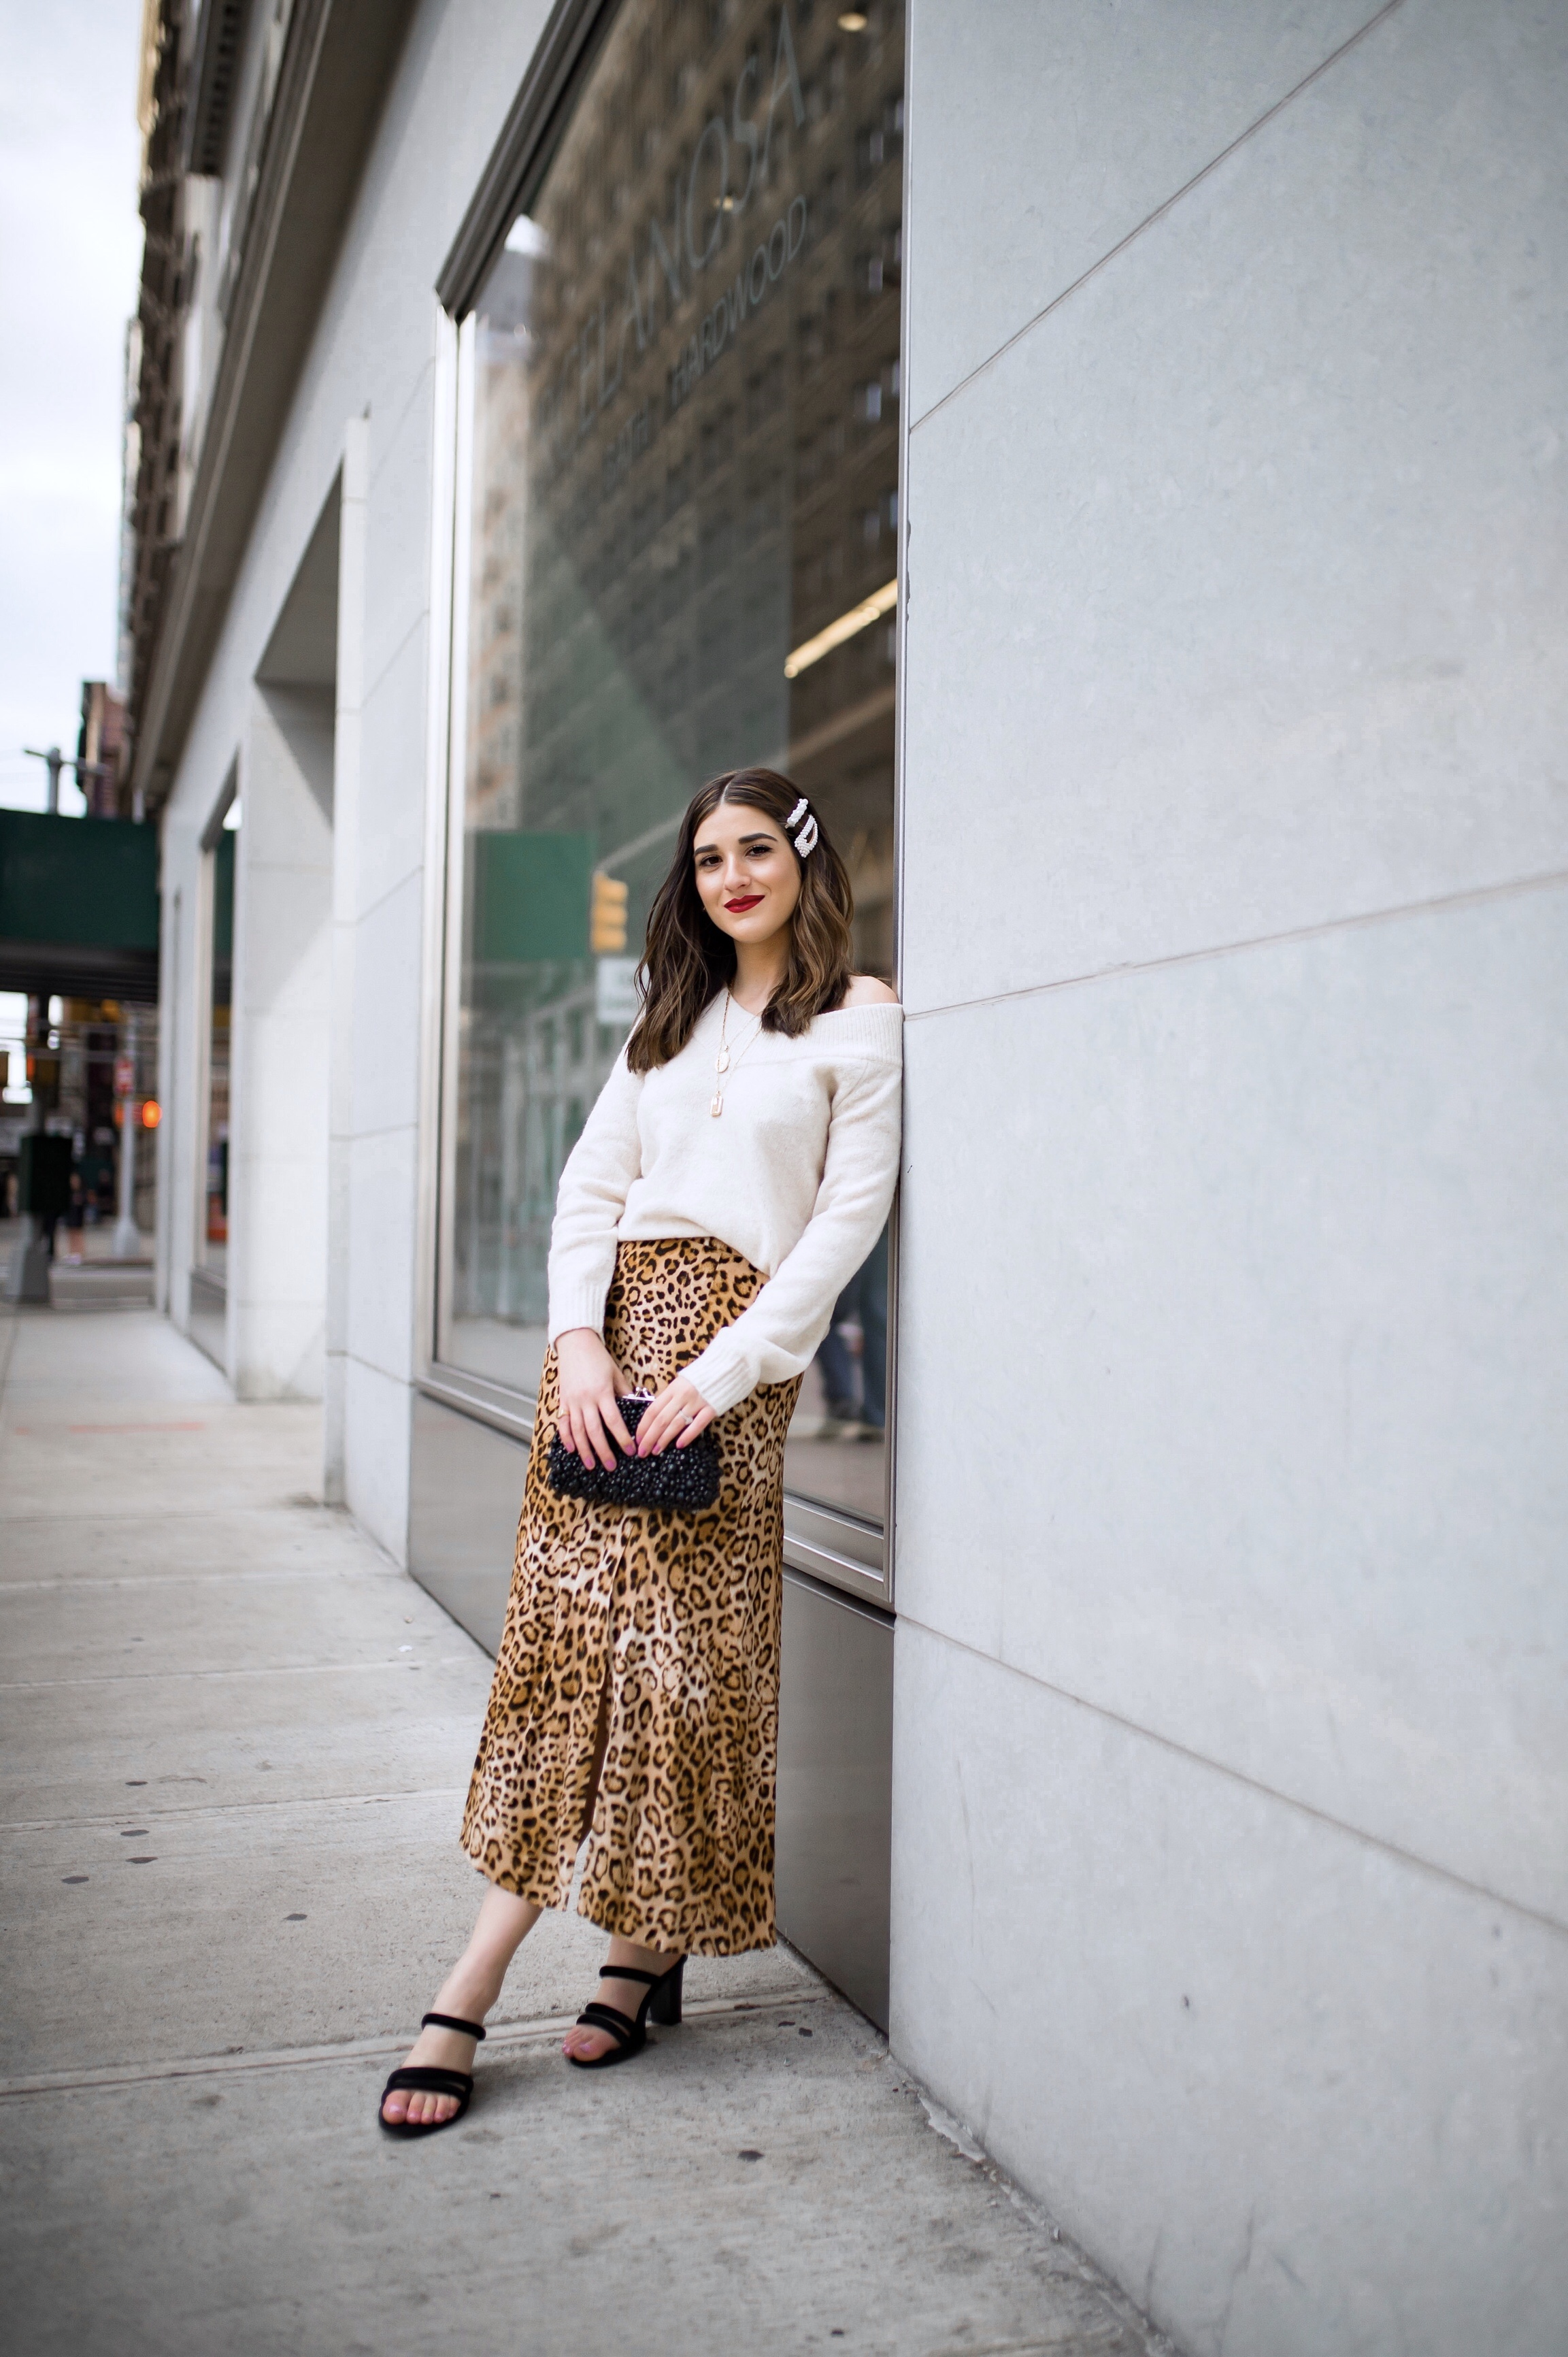 The Instagram Likes Debate Leopard Midi Skirt Beige Sweater Esther Santer Fashion Blog NYC Street Style Blogger Outfit OOTD Trendy Shopping Girl What Wear H&M Zara Pearl Barrettes Hair Clips Accessories Mules Sandals Bag Beaded Clutch Spring Necklaces.jpg